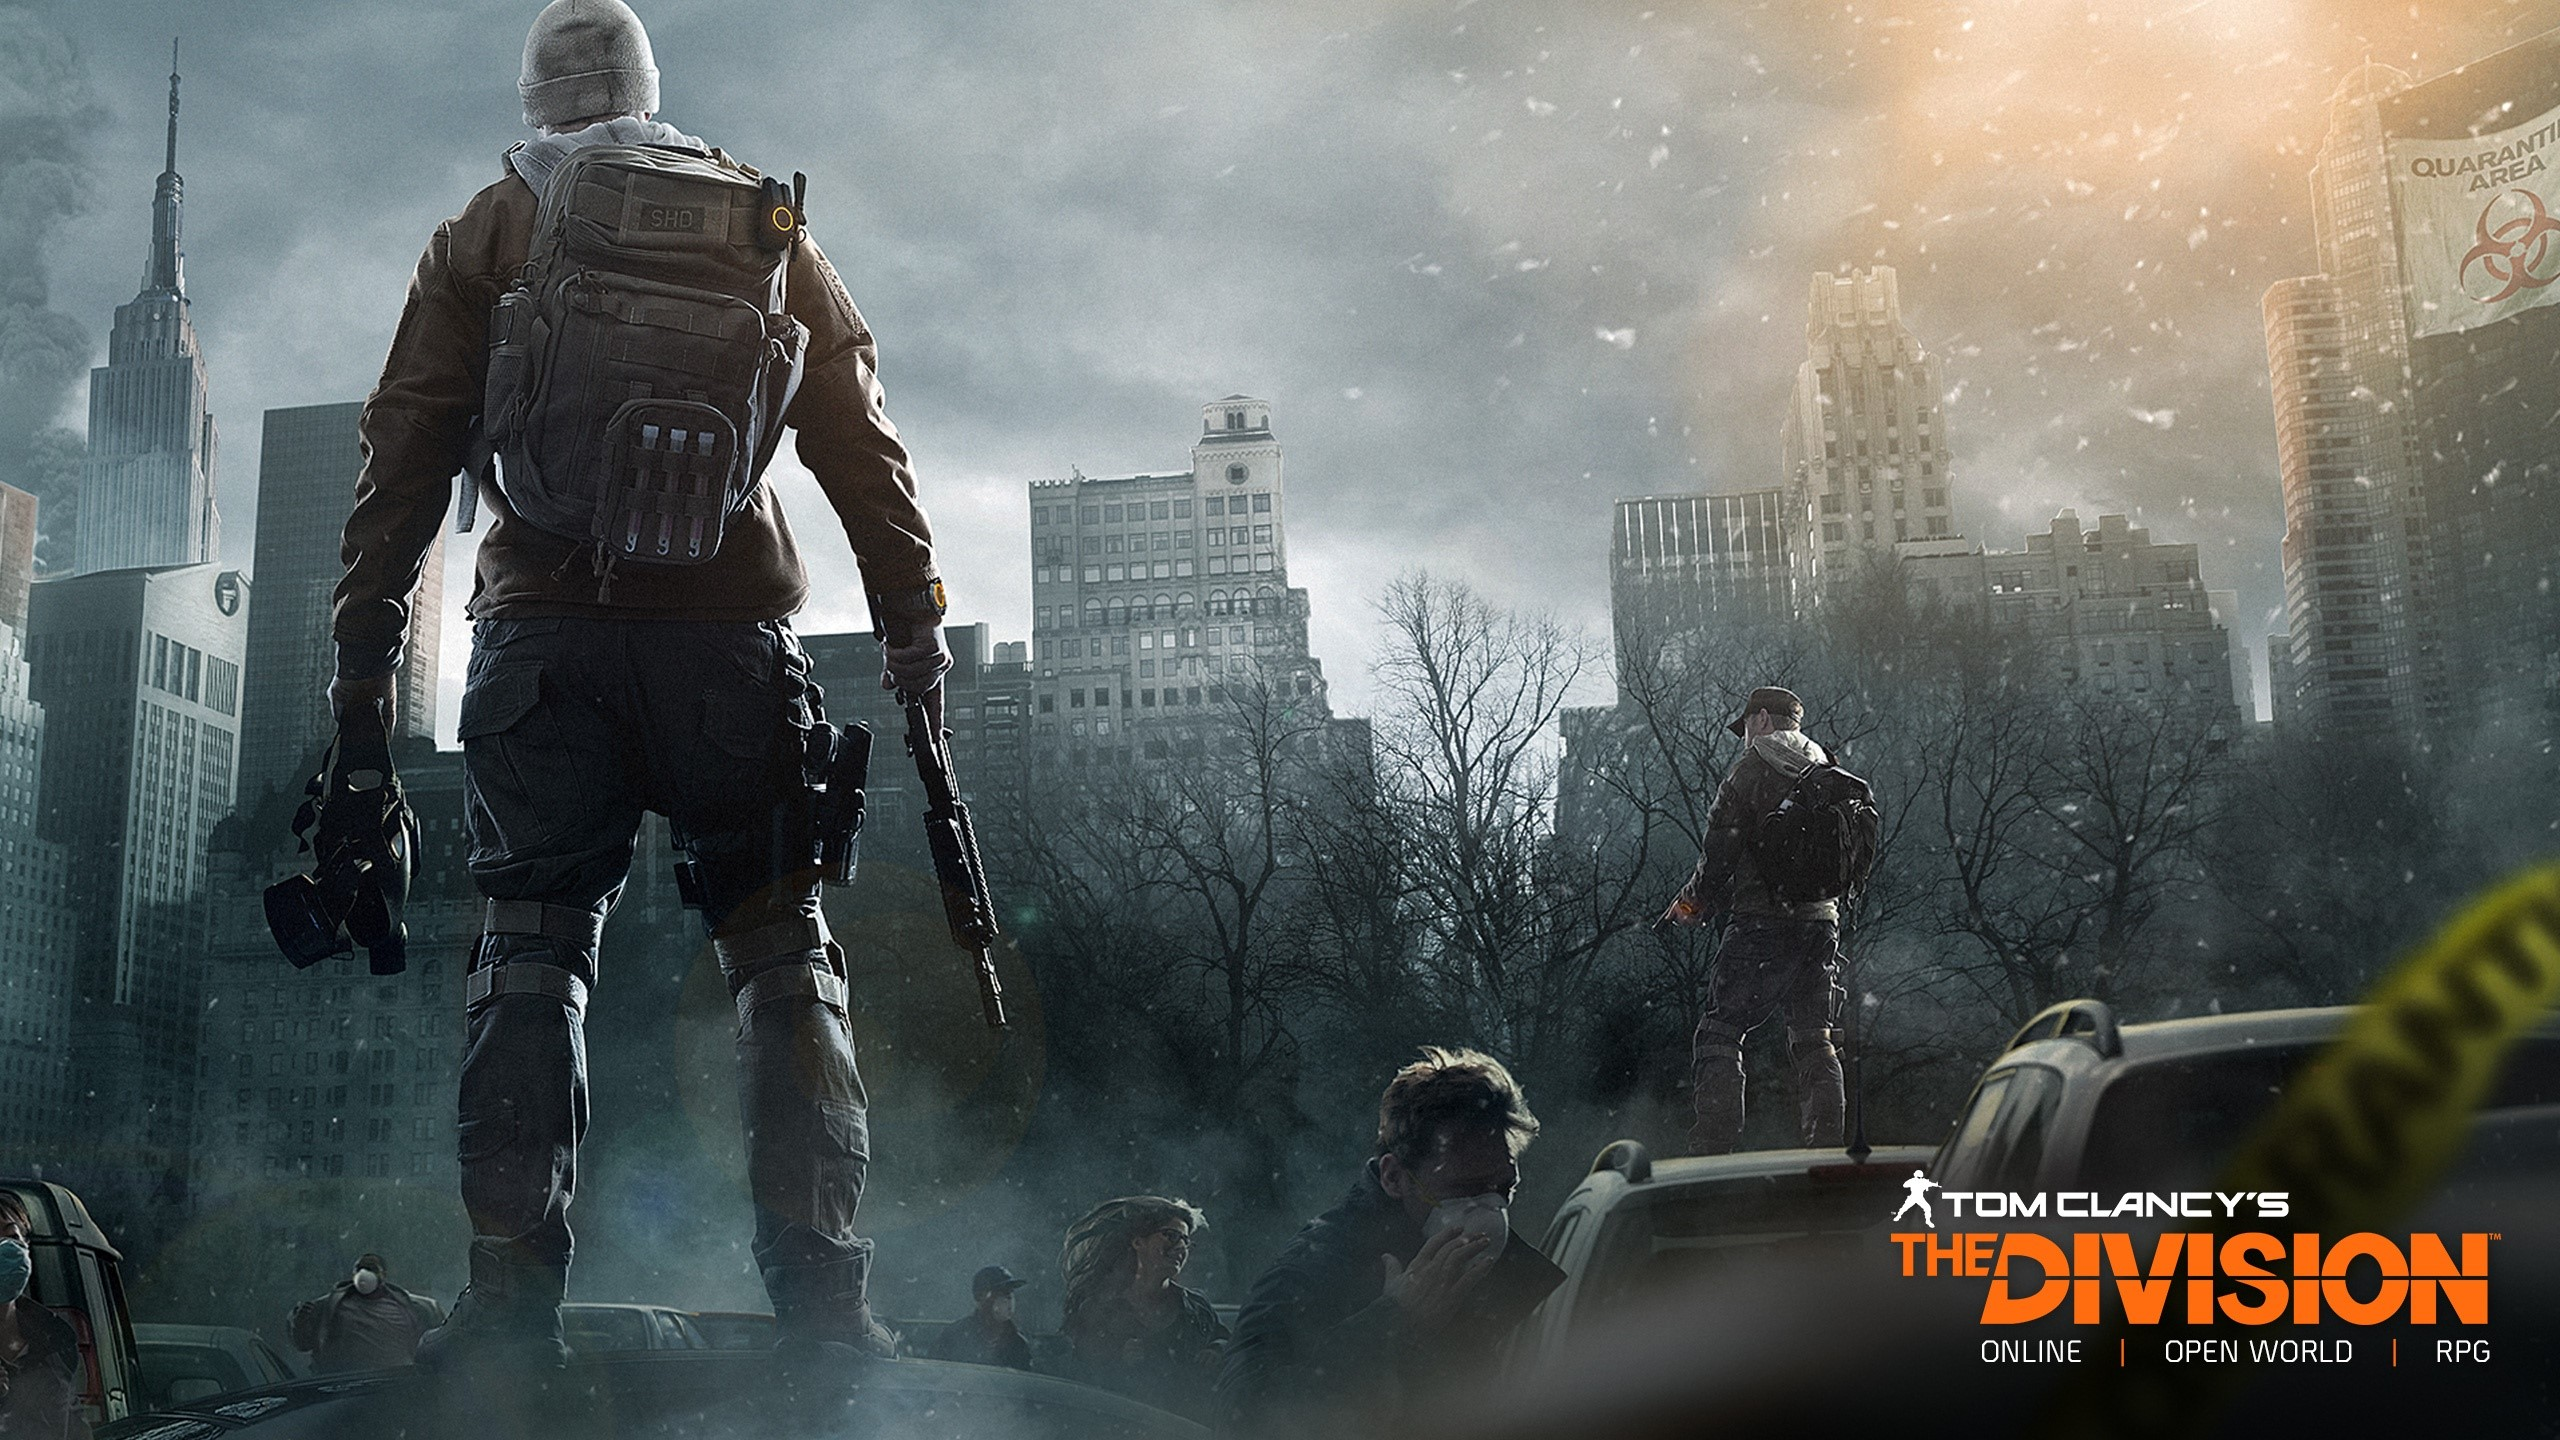 Fondos de pantalla Tom clancys The division